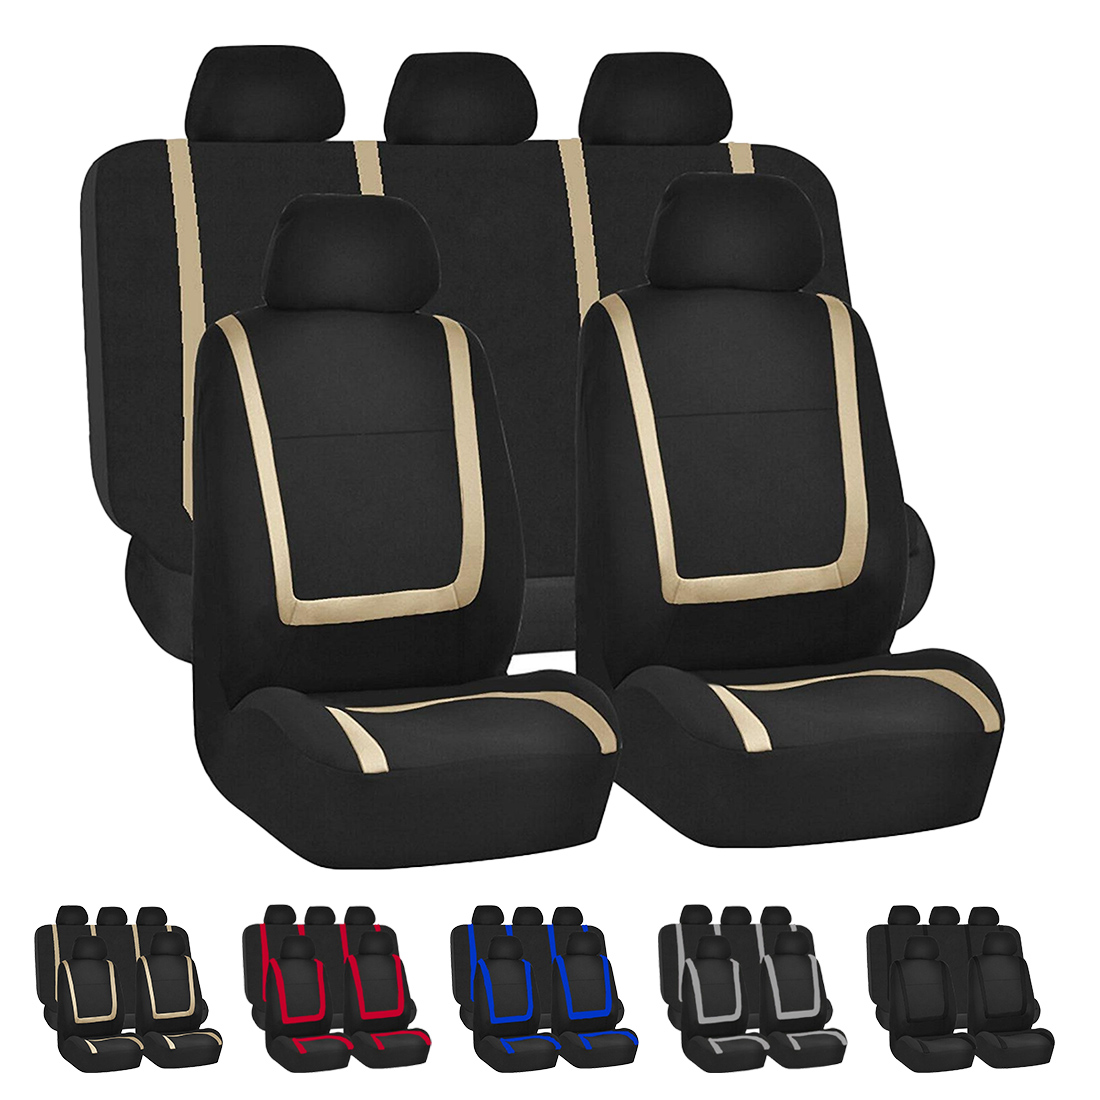 Dewtreetali Universal Car Seat Cover 9pcs Full Set Seat Covers for Crossovers Sedans Auto Interior Decoration Car Styling dewtreetali universal automoblies seat cover four seaons car seat protector full set car accessories car styling for vw bmw audi